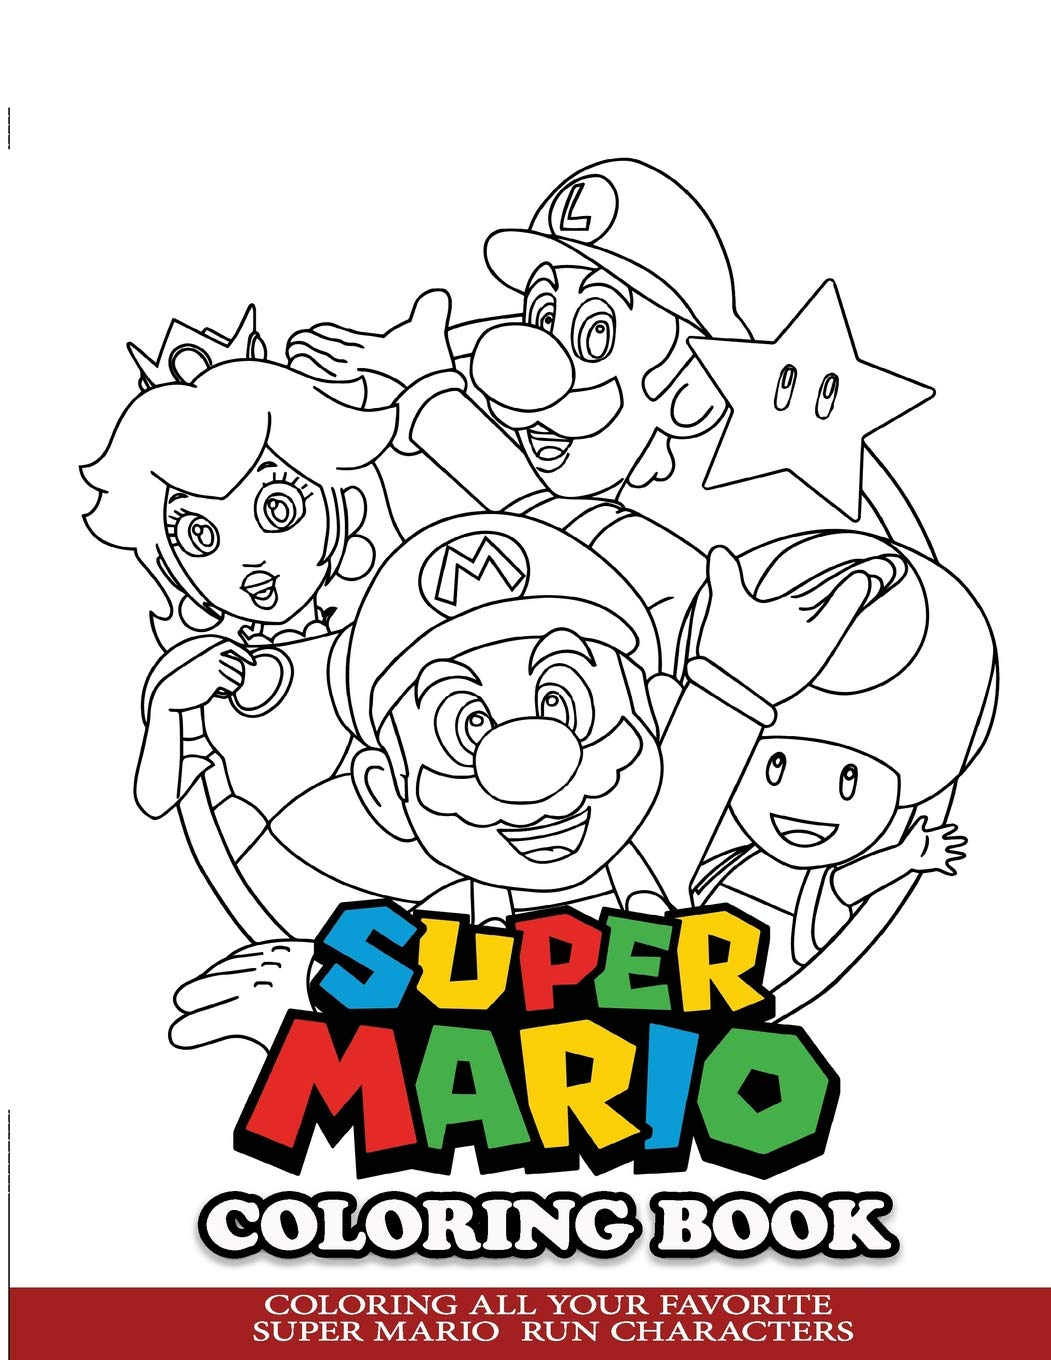 - Super Mario Coloring Book: Coloring All Your Favorite Super Mario